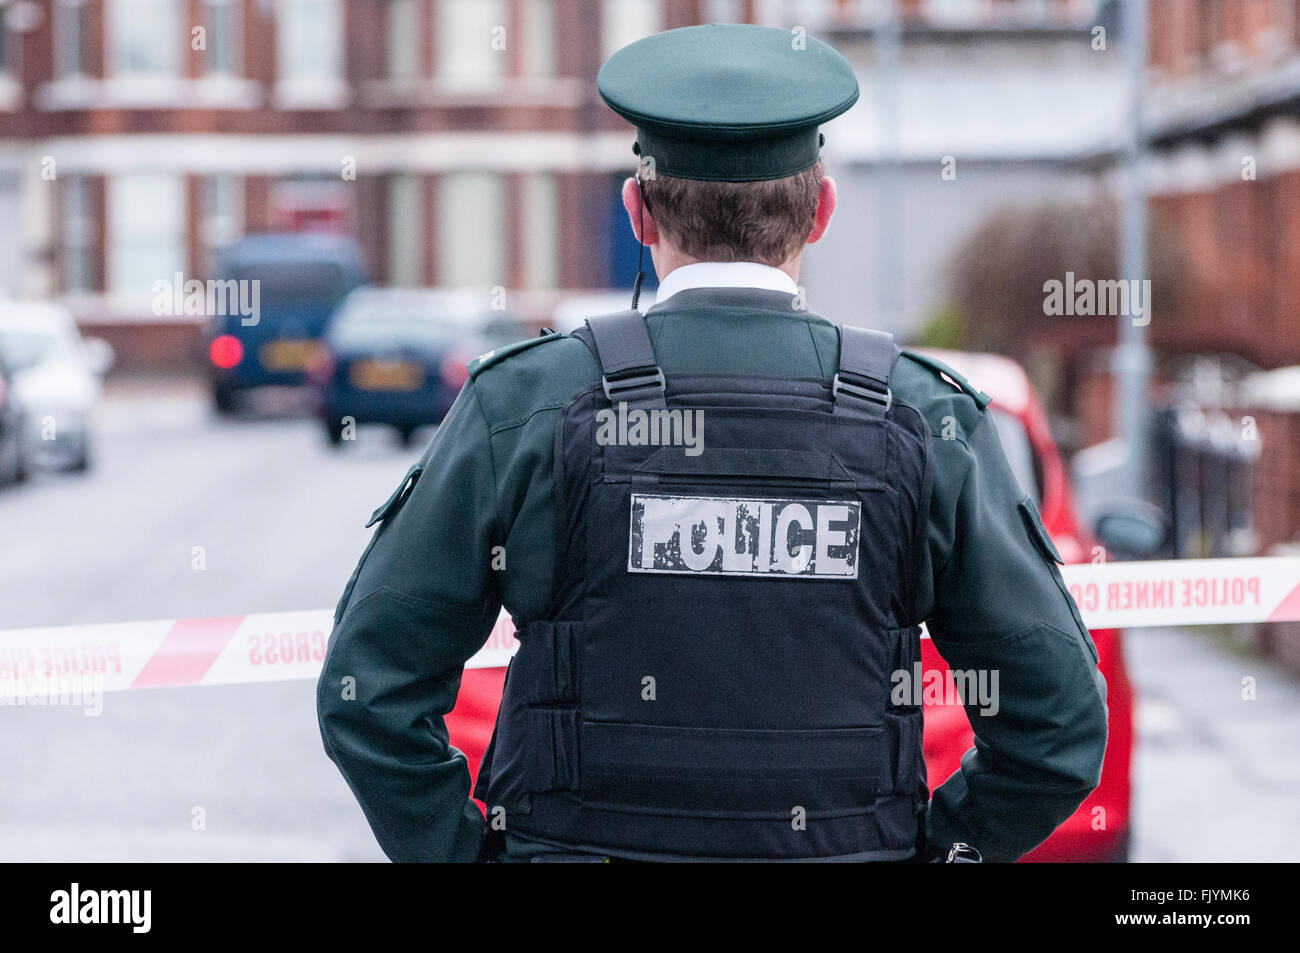 Belfast, Northern Ireland. 04 Mar 2016 - A PSNI Police Officer stands at a police cordon during a bomb alert where - Stock Image